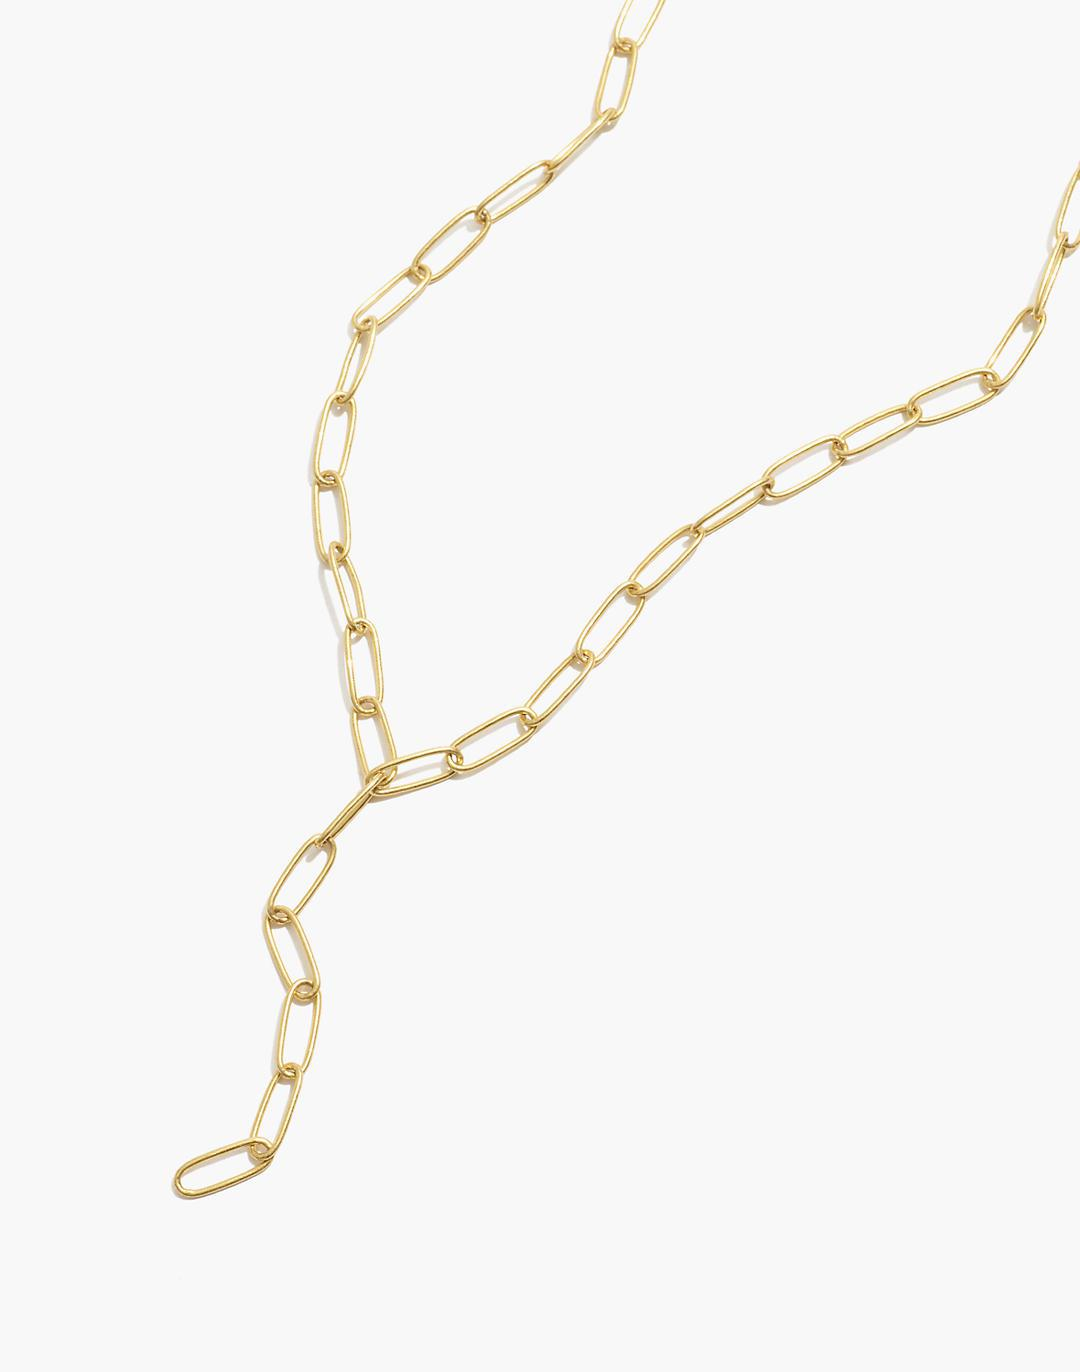 Paperclip Lariat Necklace